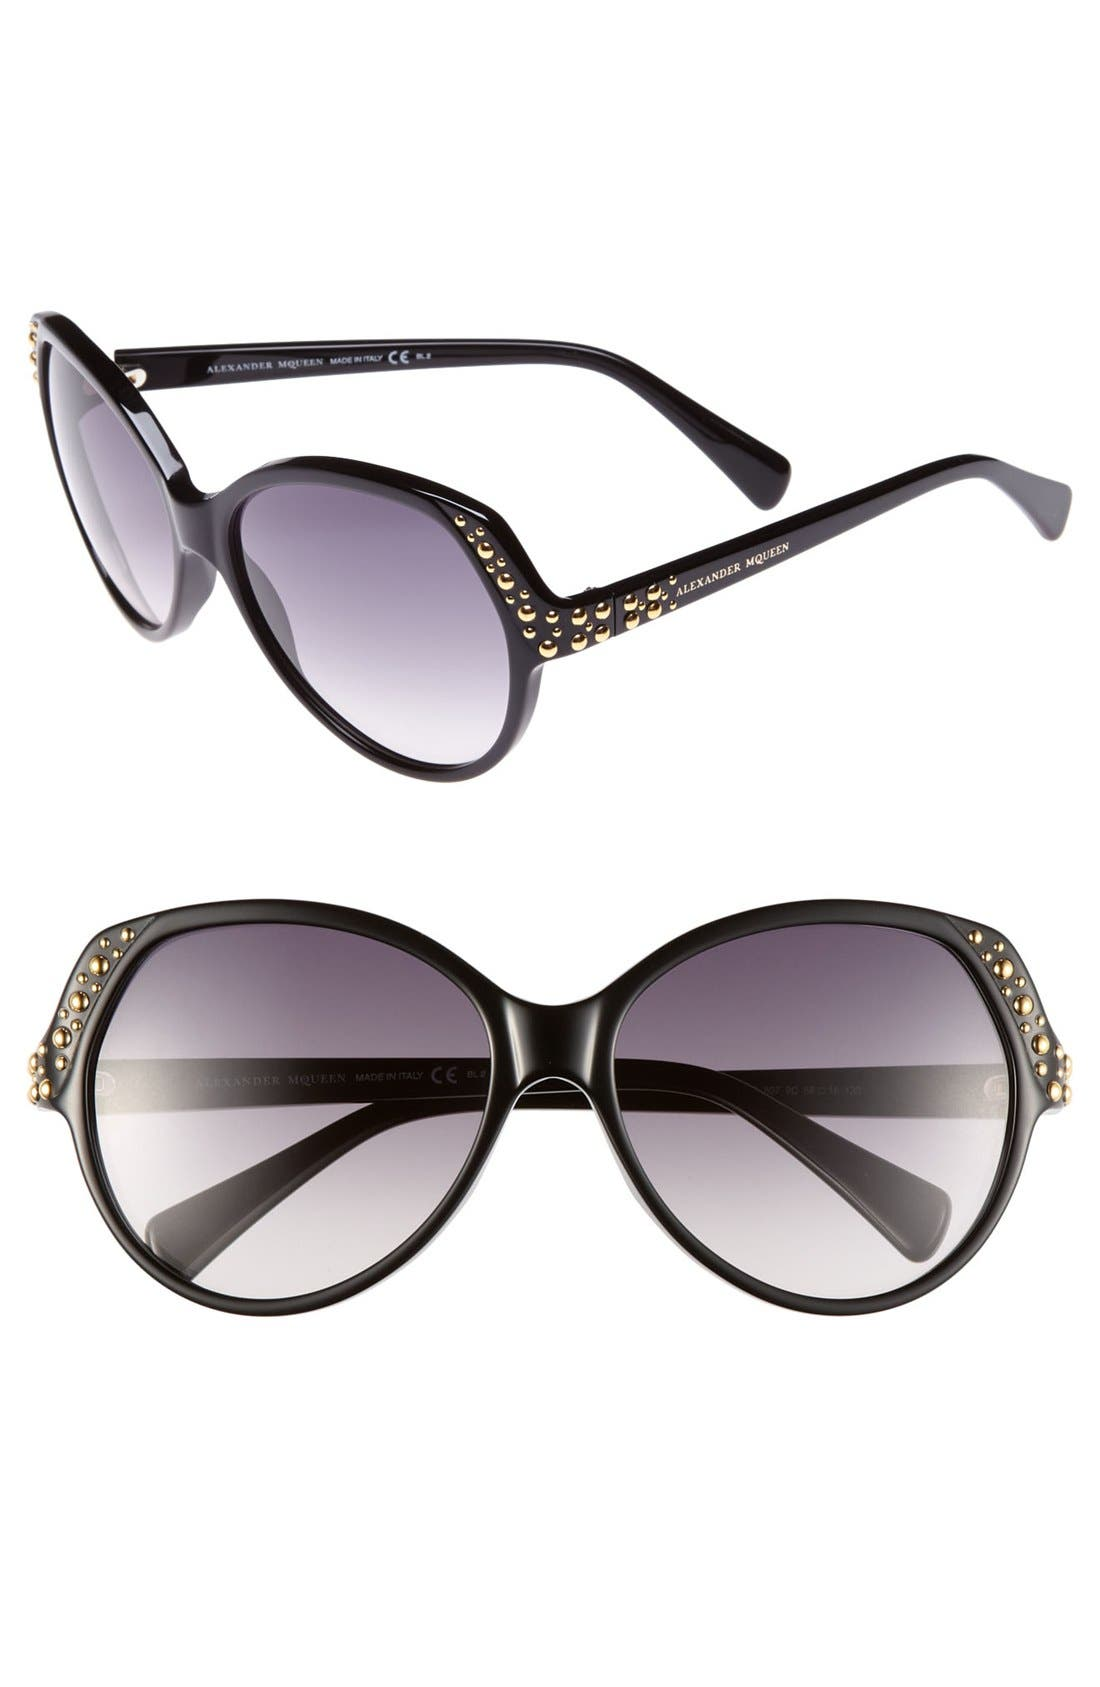 Main Image - Alexander McQueen 58mm Studded Sunglasses